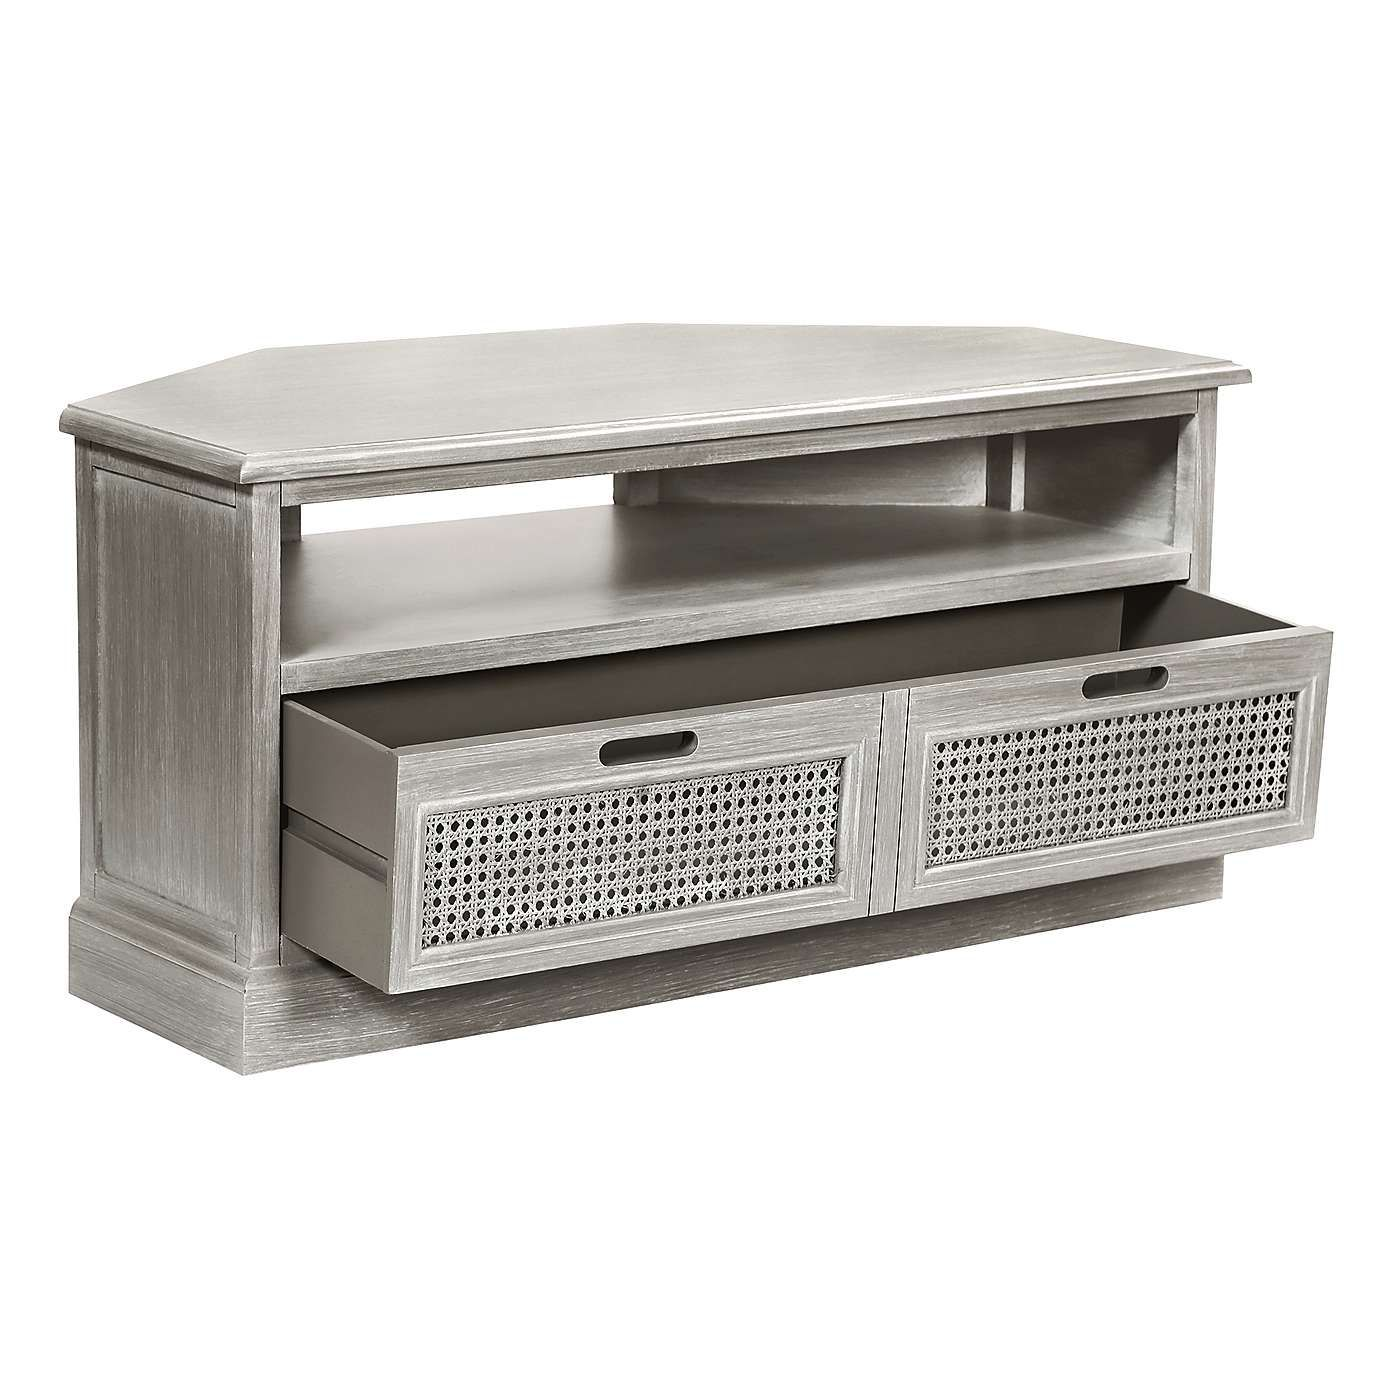 more photos c30f2 6b317 Lucy Cane Grey Corner TV Stand | Living Room Ideas in 2019 ...